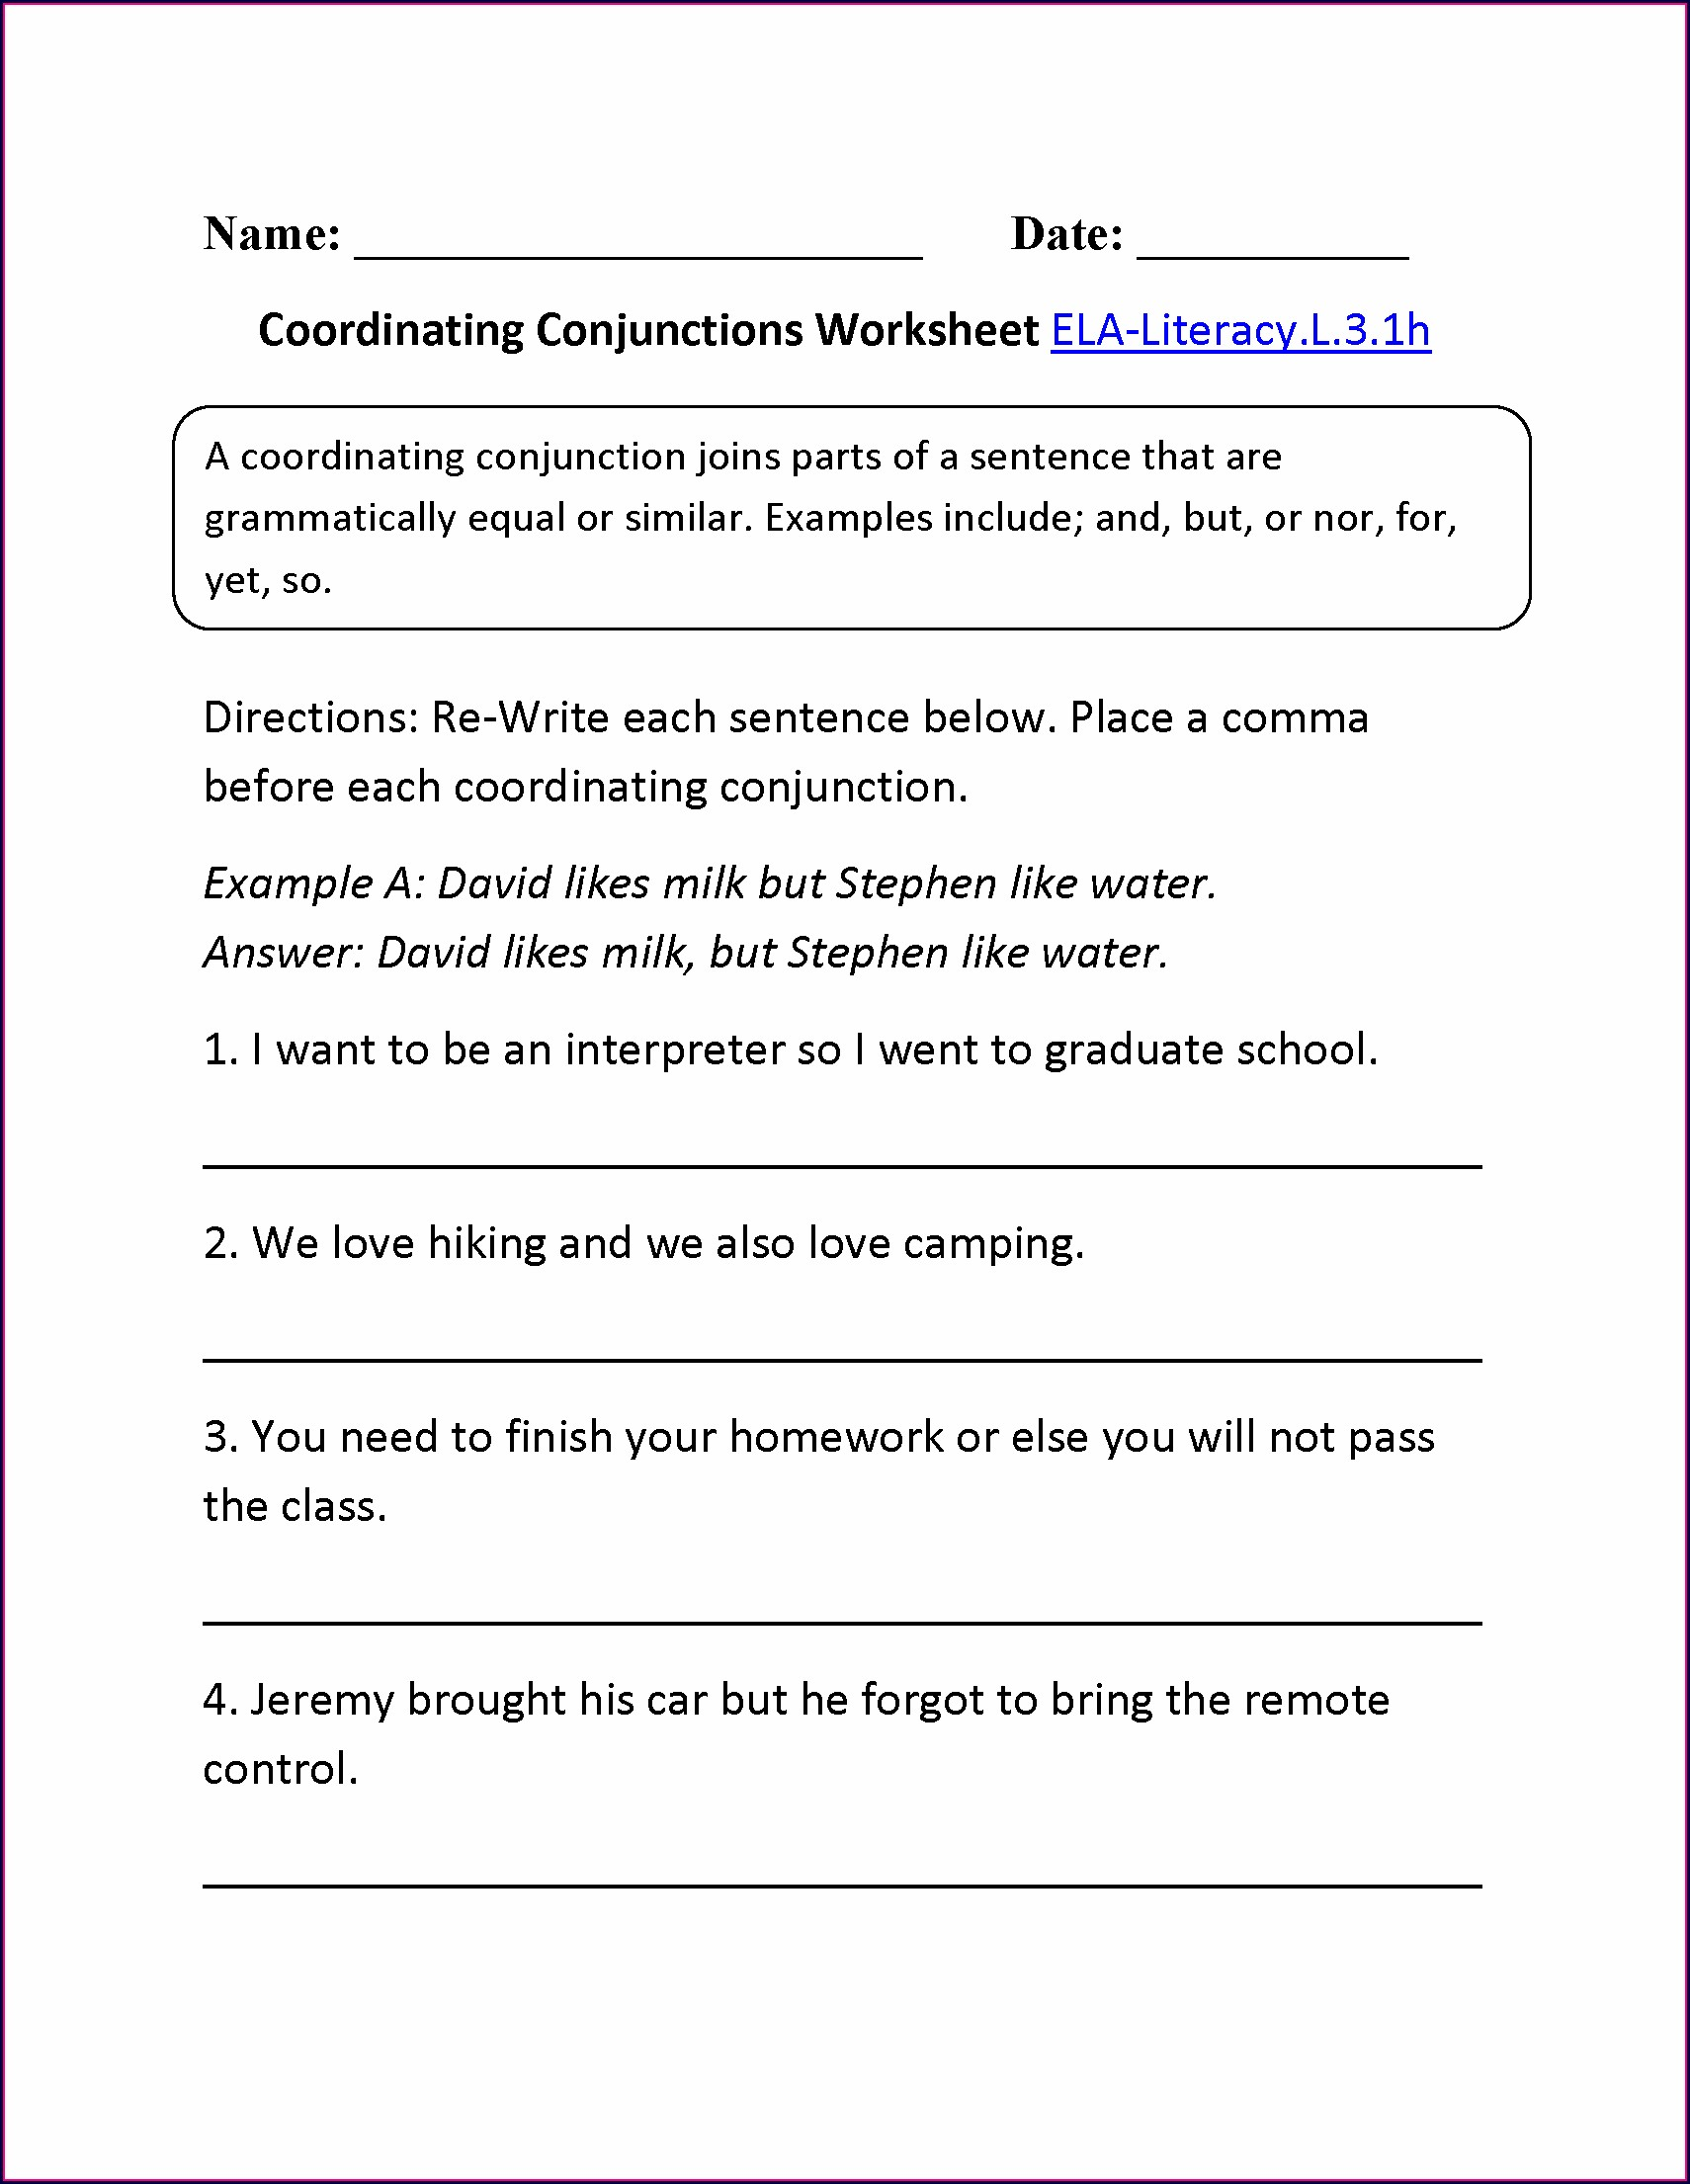 5th Grade Conjunctions Worksheets For Grade 5 With Answers